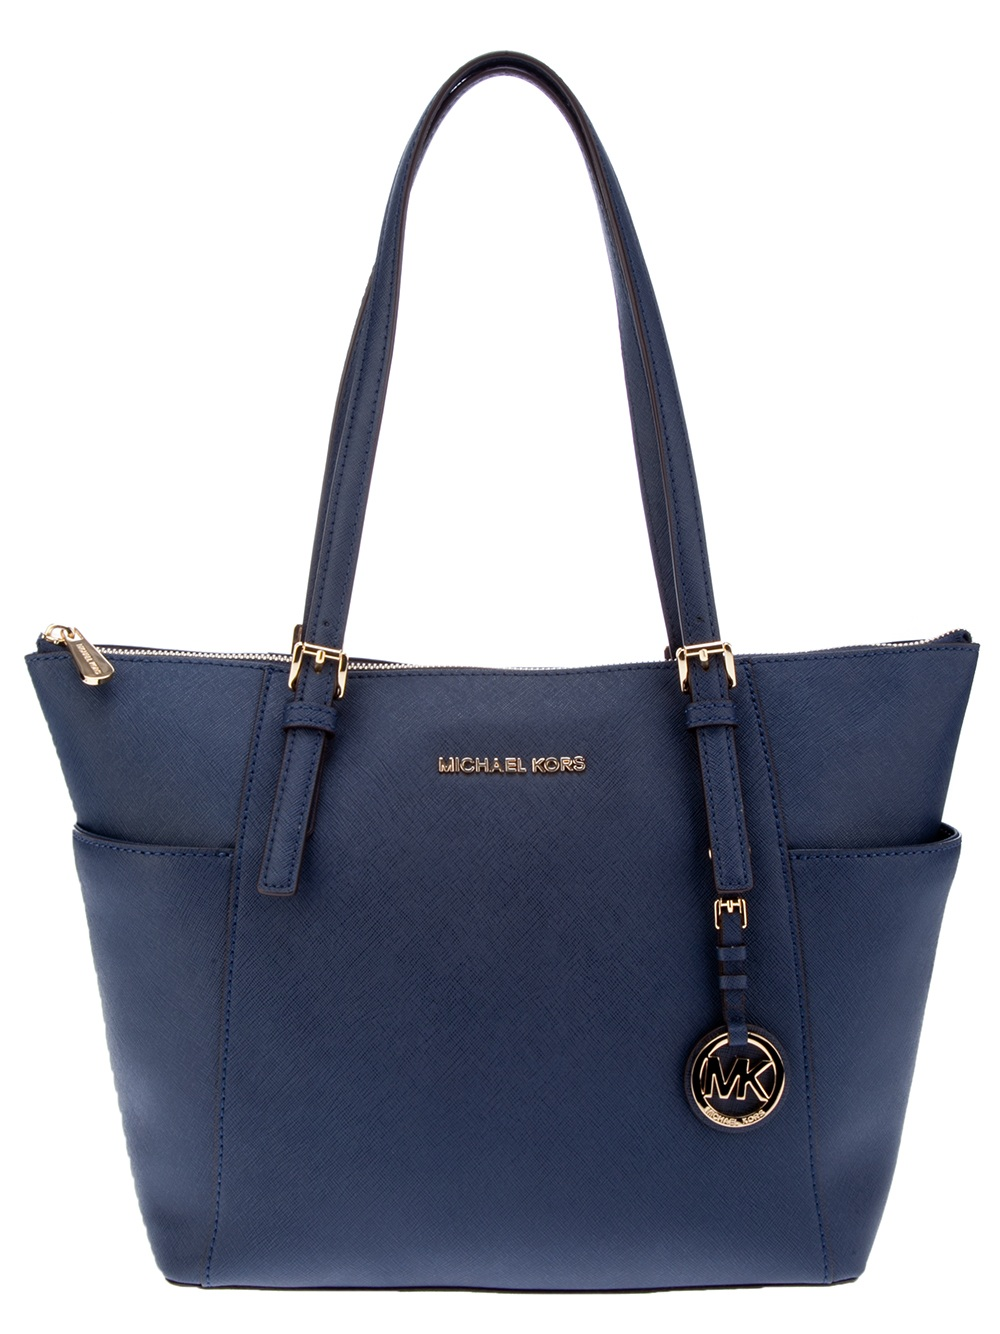 michael michael kors leather shopper tote in blue navy lyst. Black Bedroom Furniture Sets. Home Design Ideas